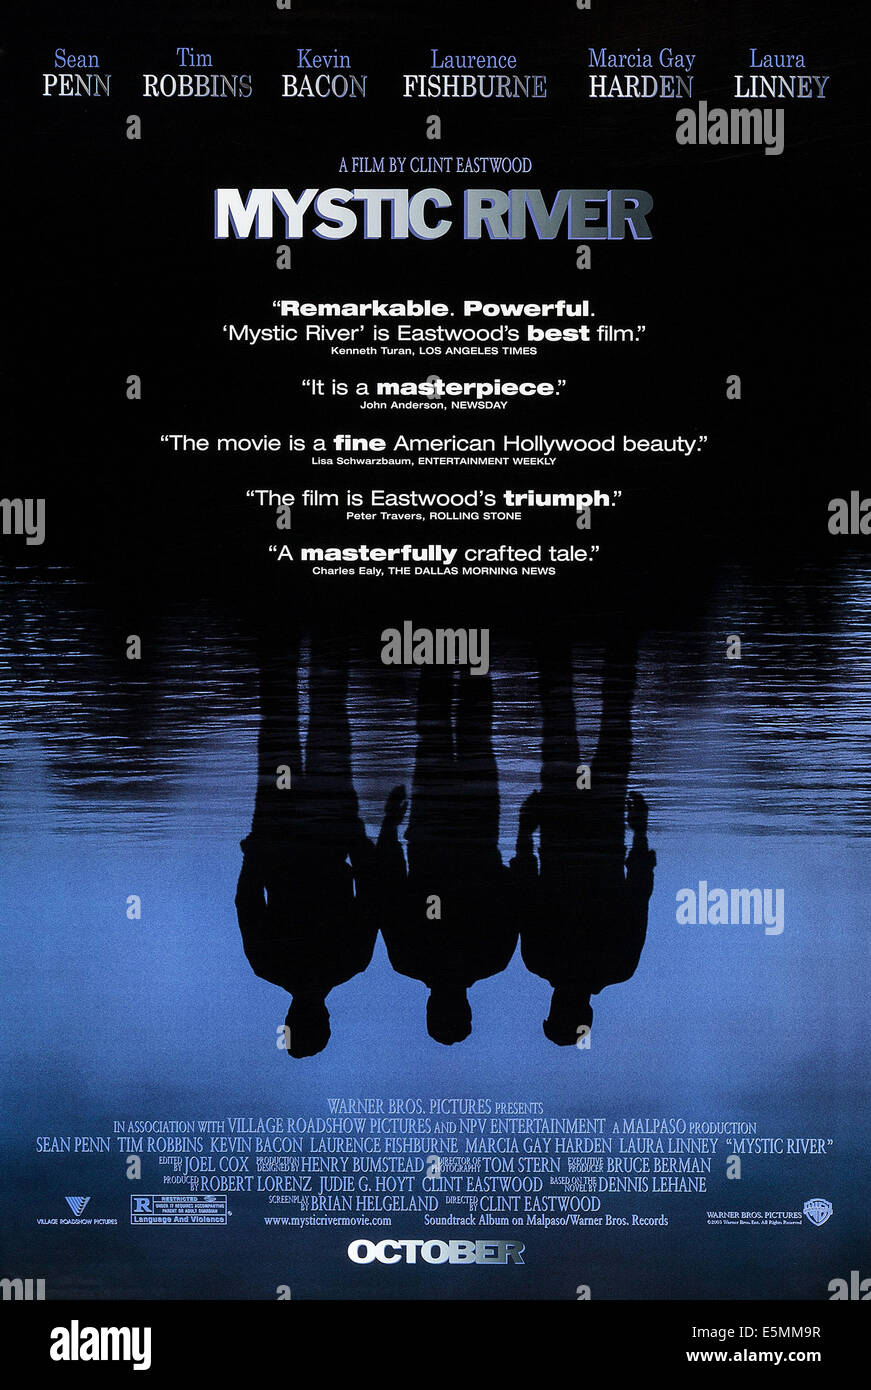 MYSTIC RIVER, US advance poster art, 2003, © Warner Brothers/courtesy Everett Collection - Stock Image